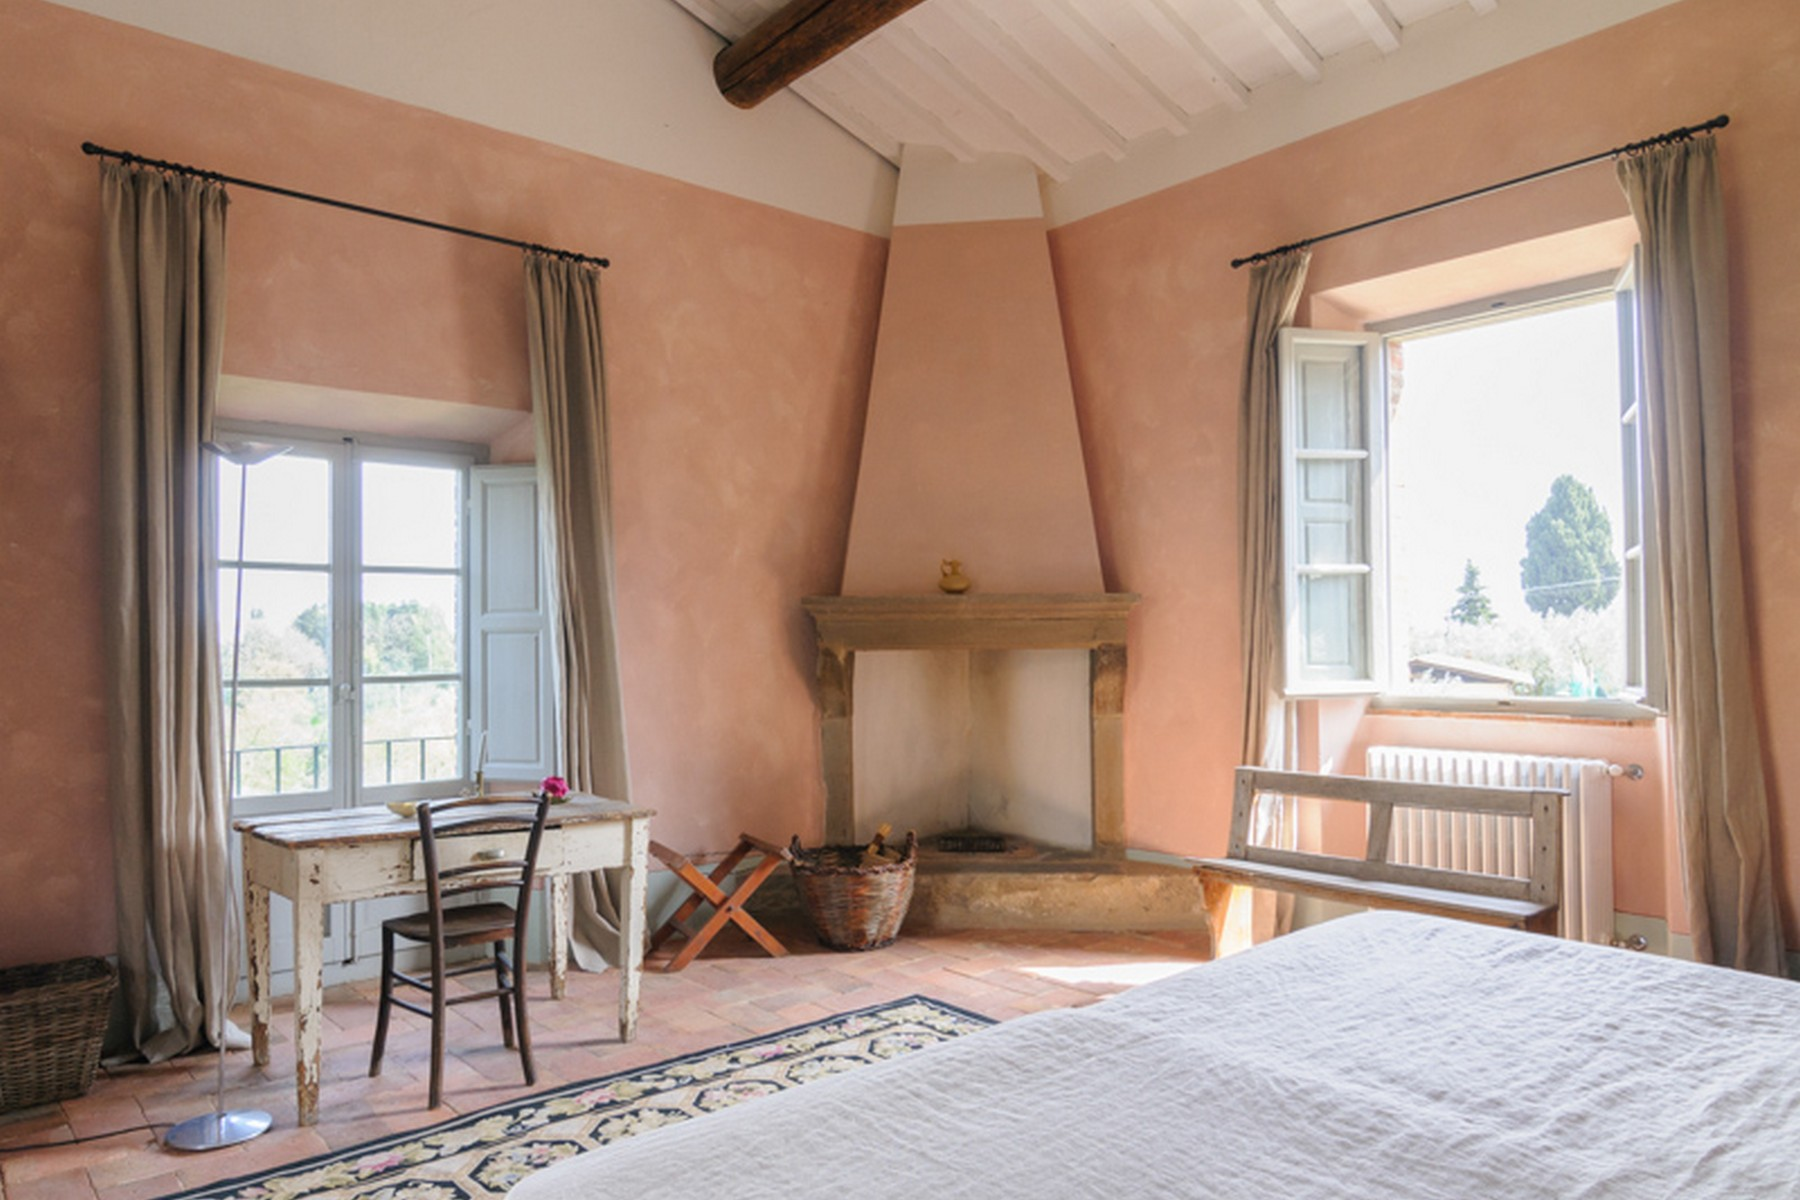 Additional photo for property listing at Splendid villa between Siena and Arezzo Monte San Savino Arezzo, Arezzo 52048 Italie